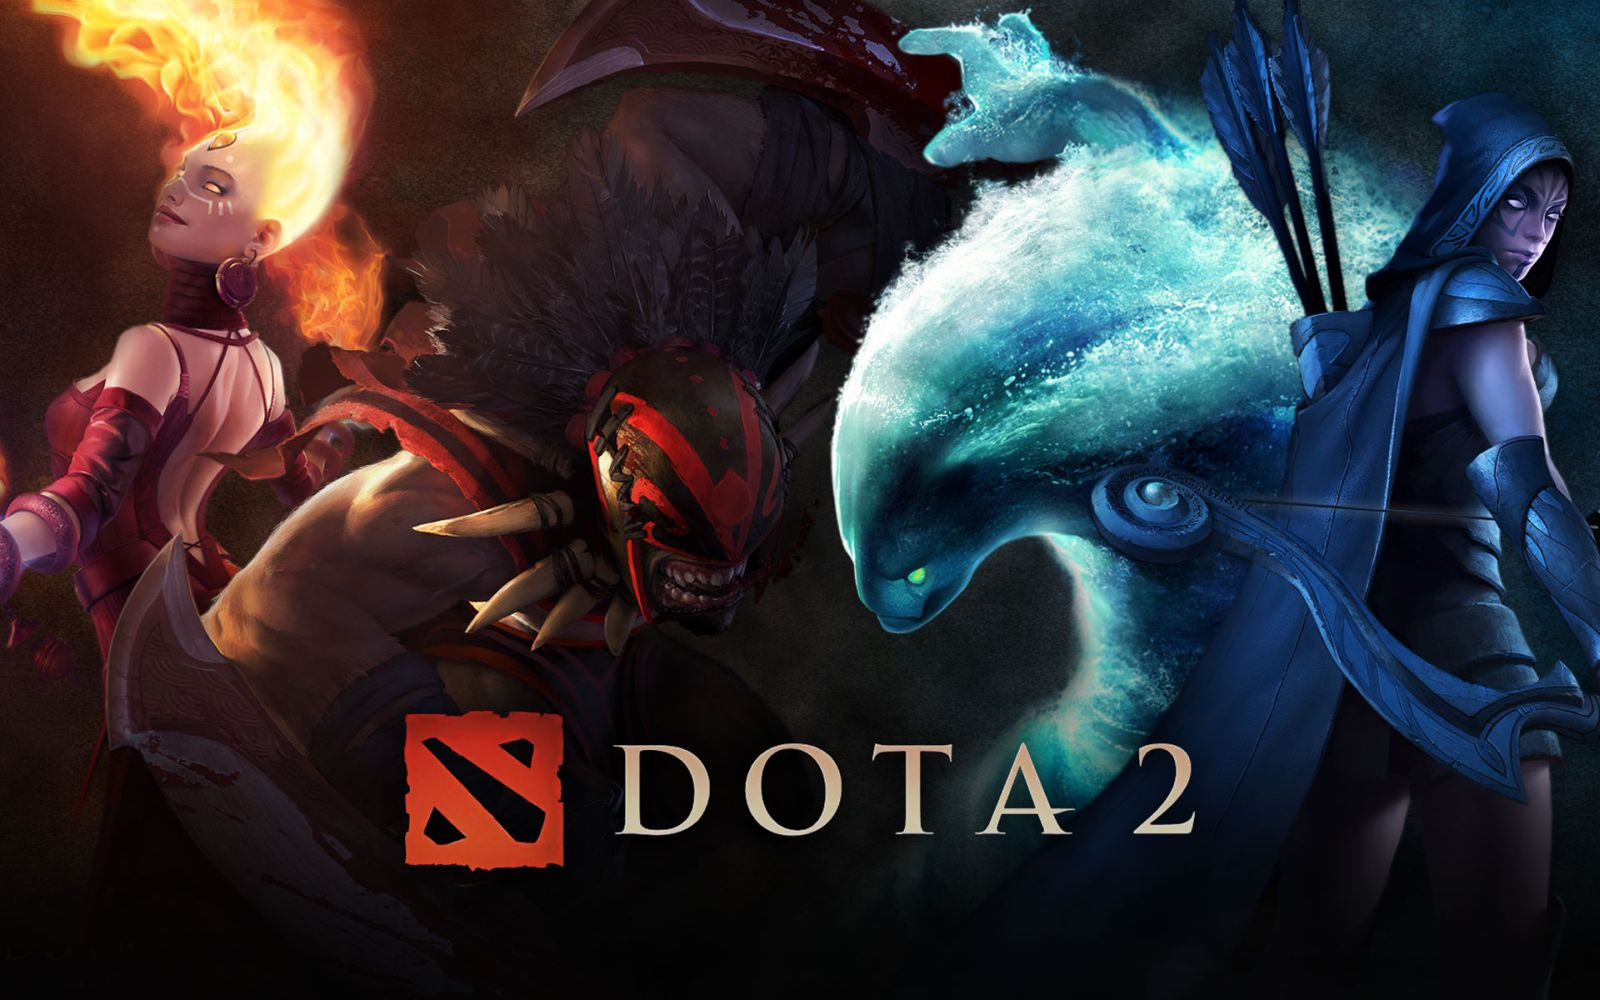 internet suspects dota 2 team ehome of cheating mmoexaminer